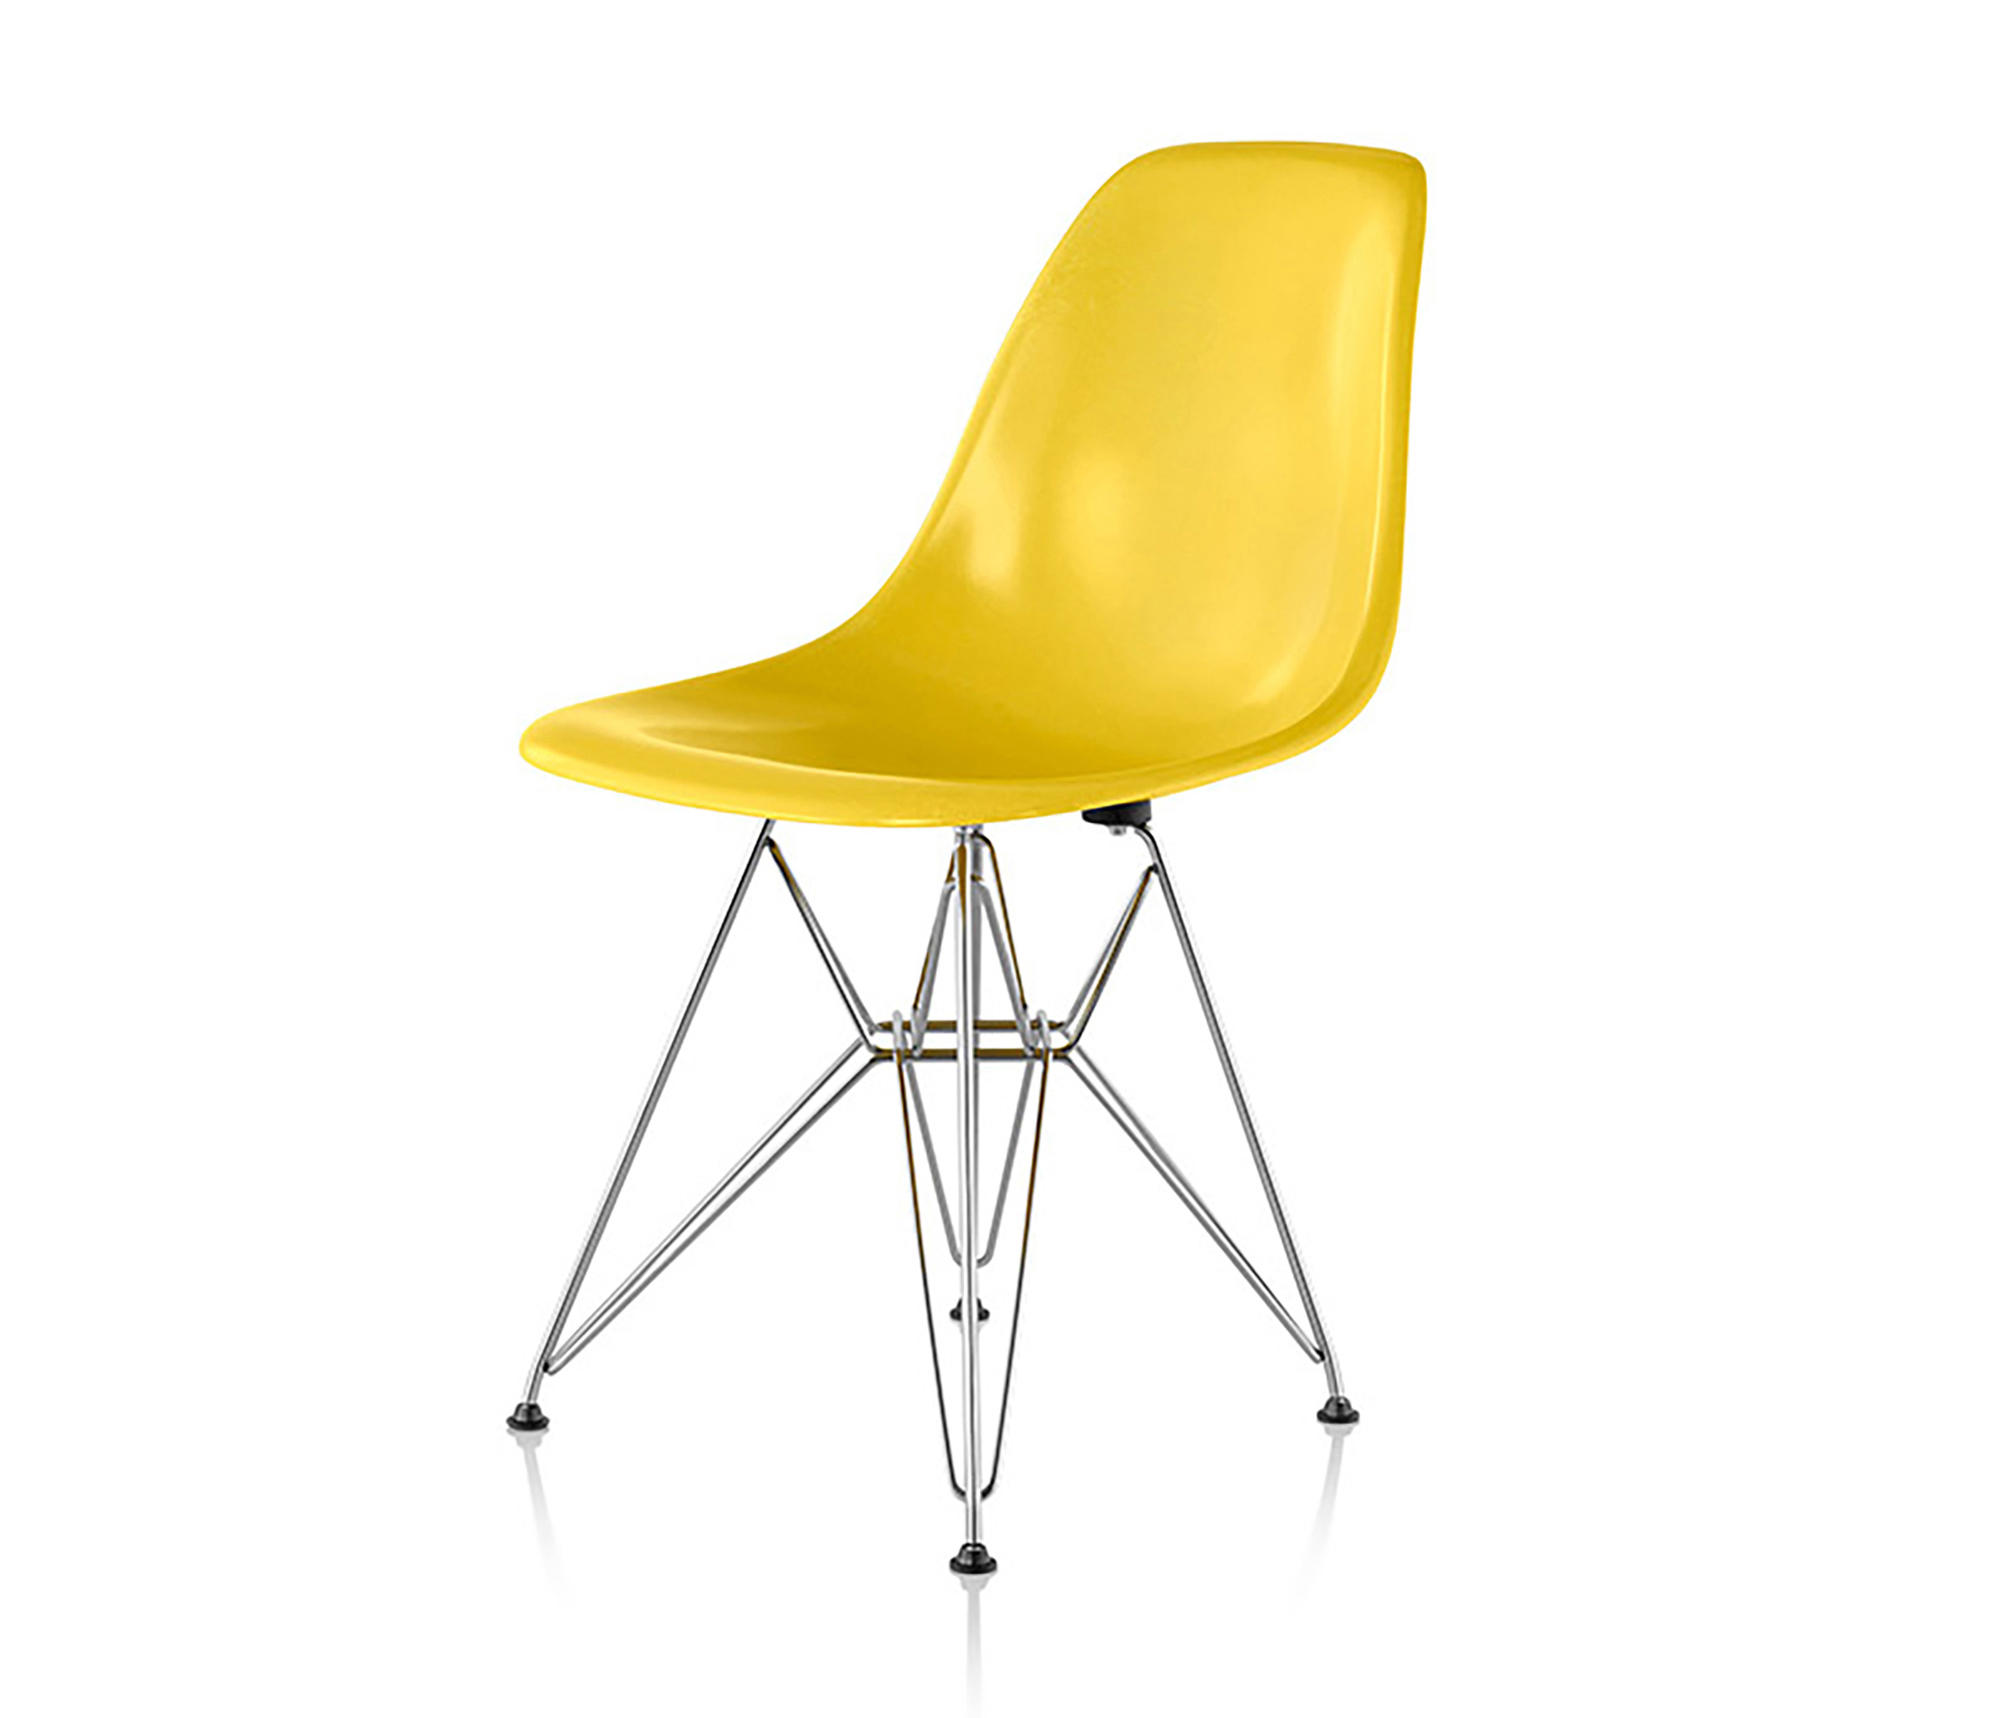 eames molded side chair spacesaver high fiberglass chairs from herman miller by